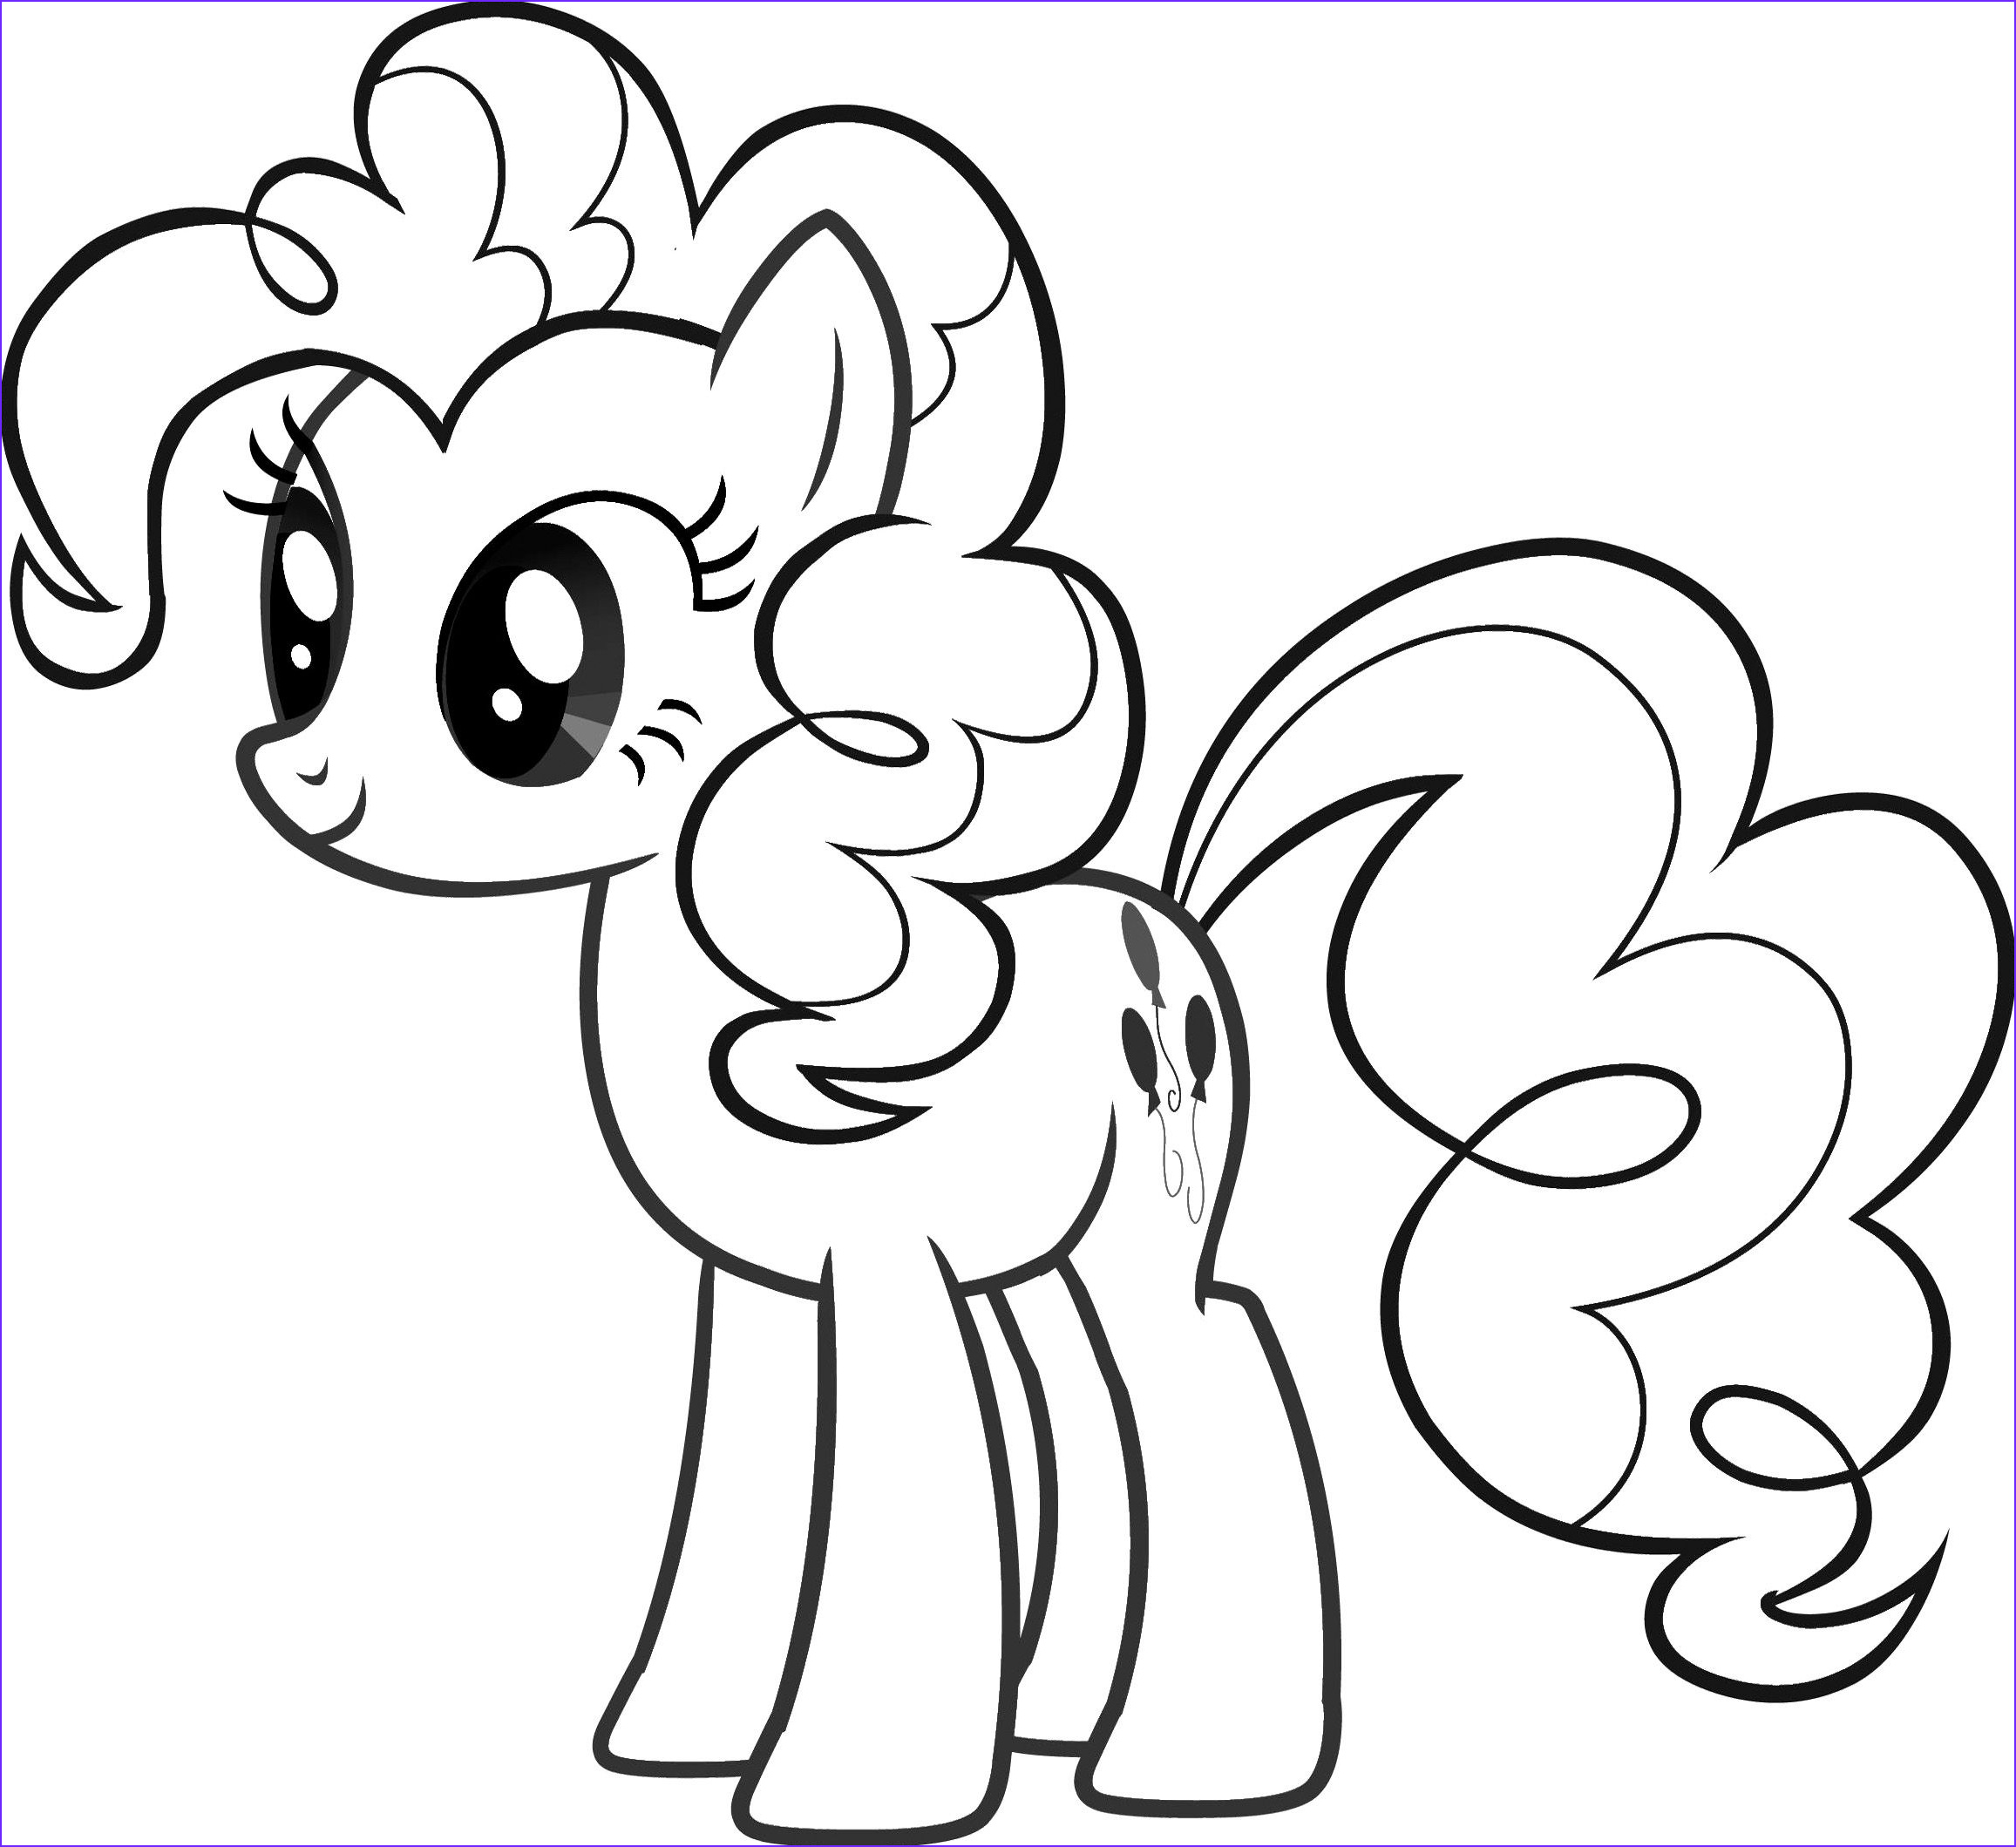 My Little Pony Coloring Pages to Print Best Of Gallery Pinkie Pie My Little Pony Coloring Pages Templates